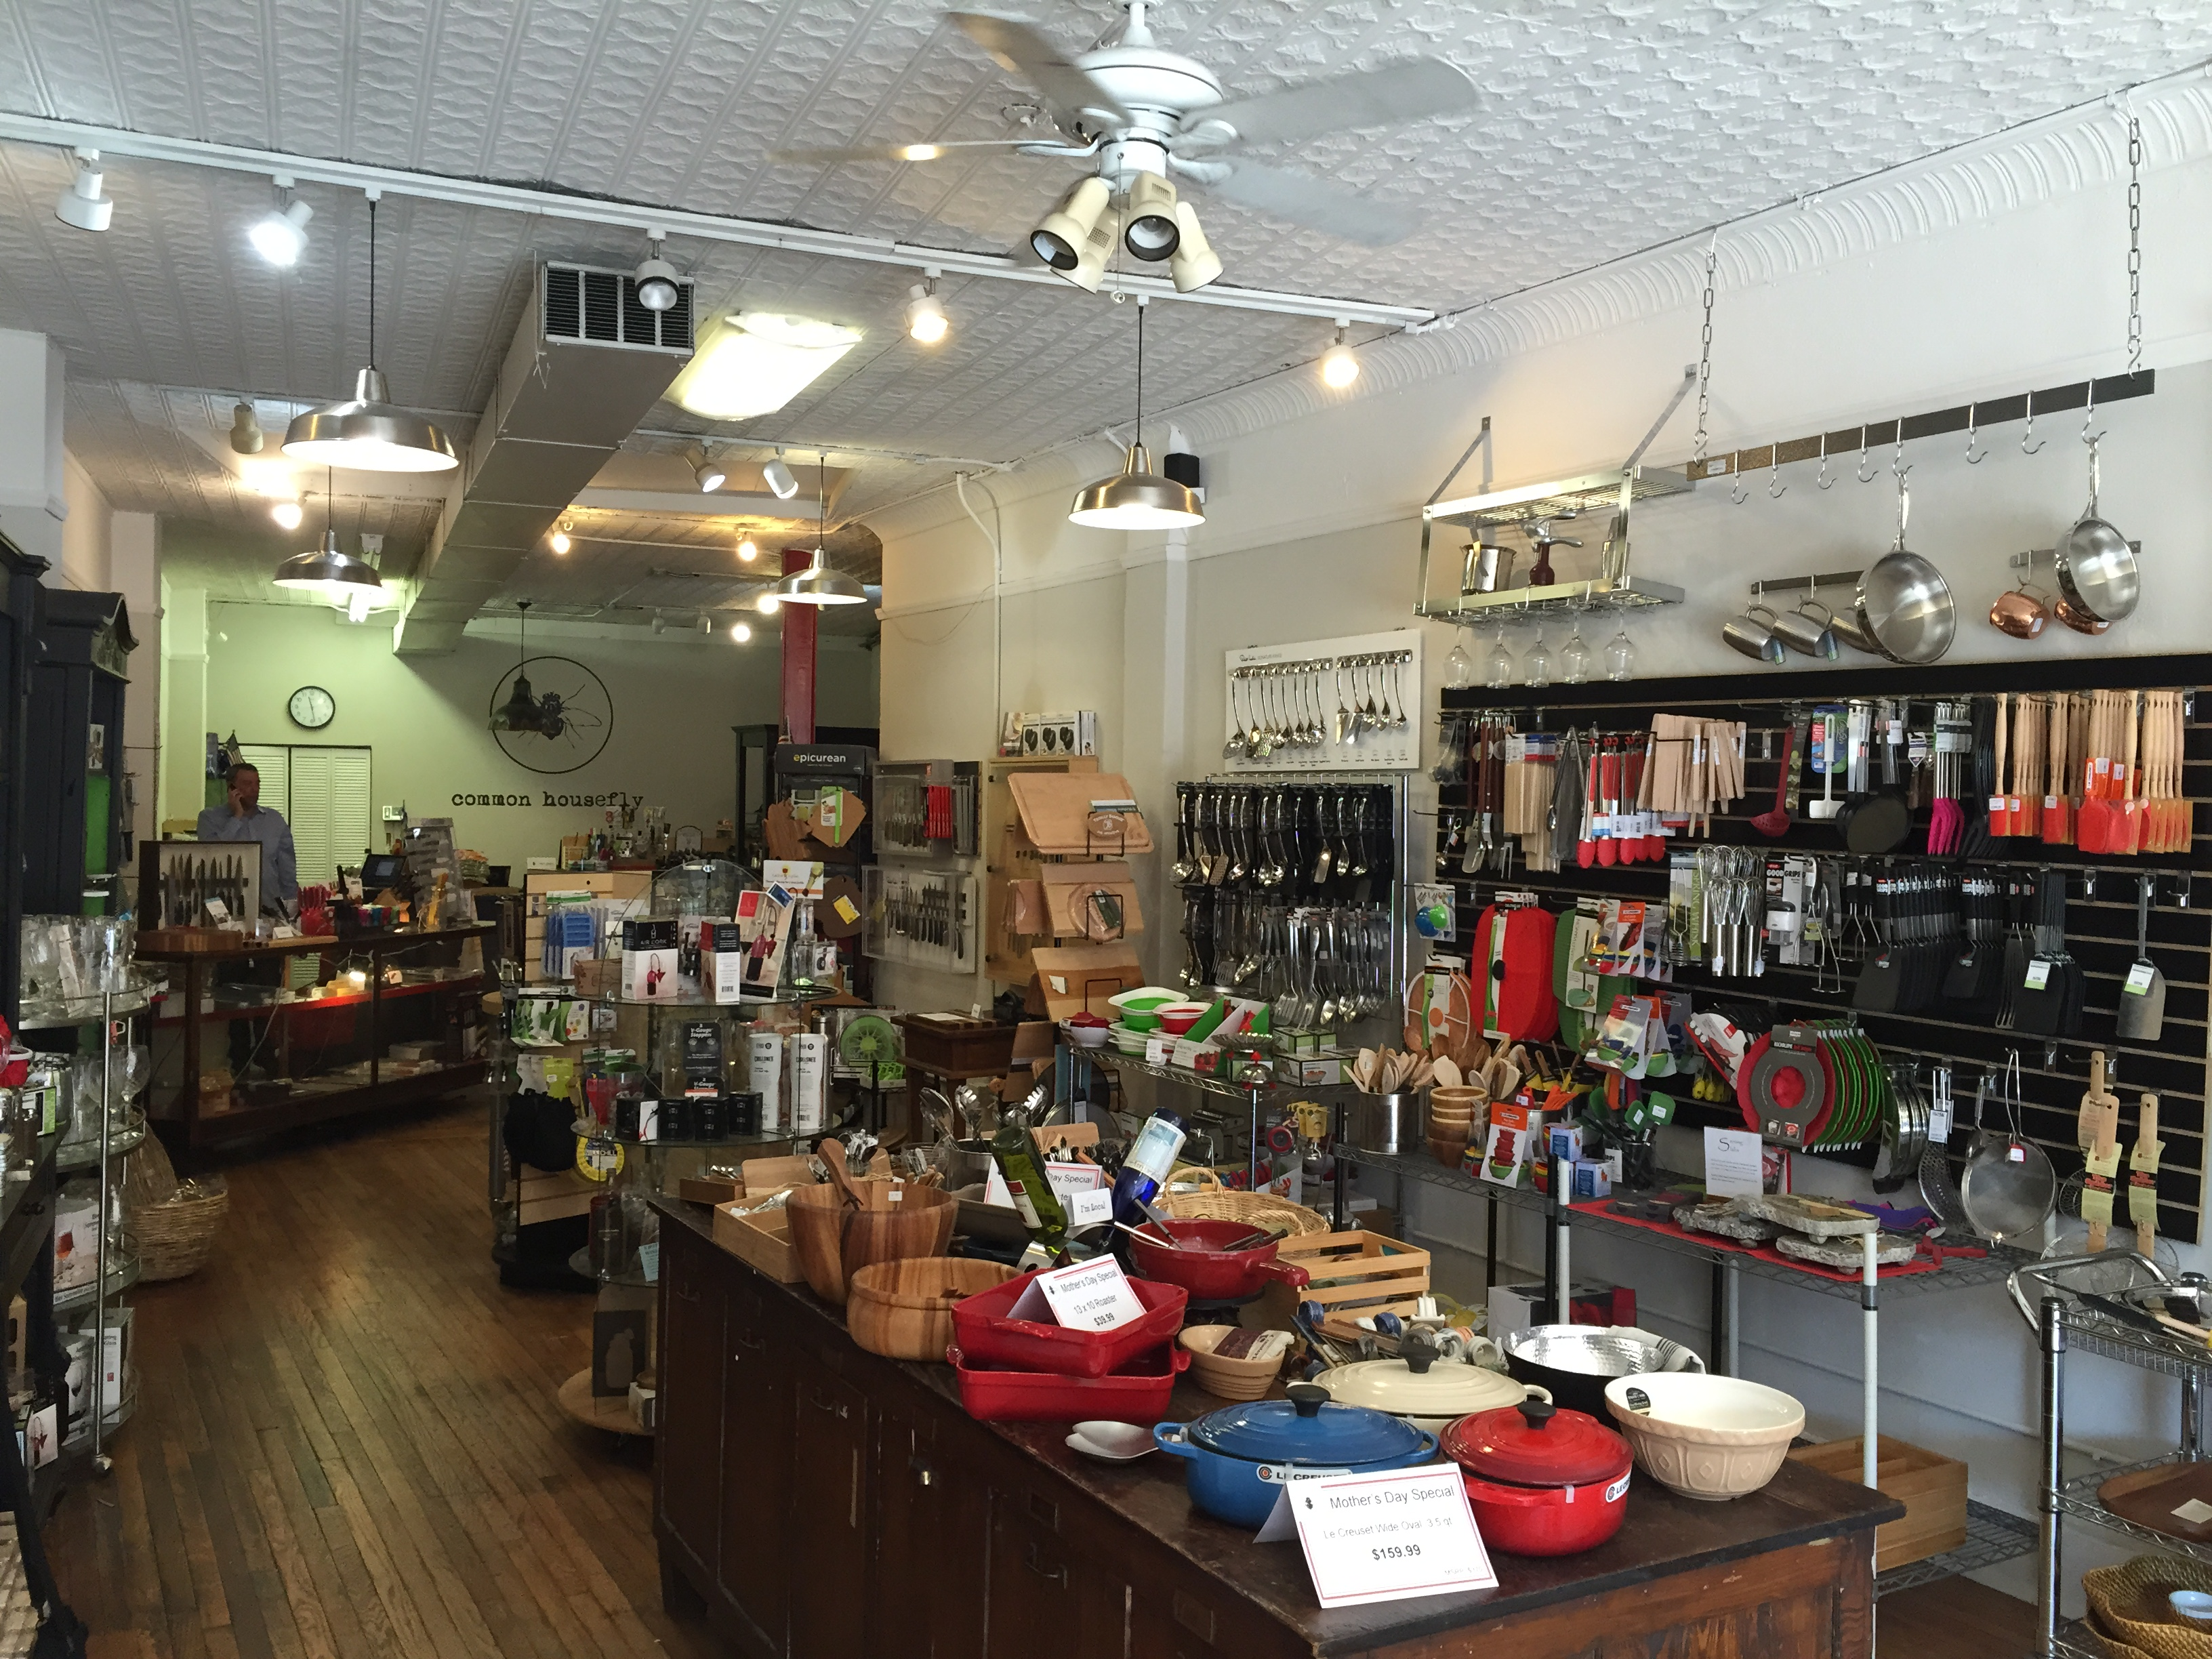 In Black Mountain, the Common Housefly kitchen emporium is 'toy store for foodies'